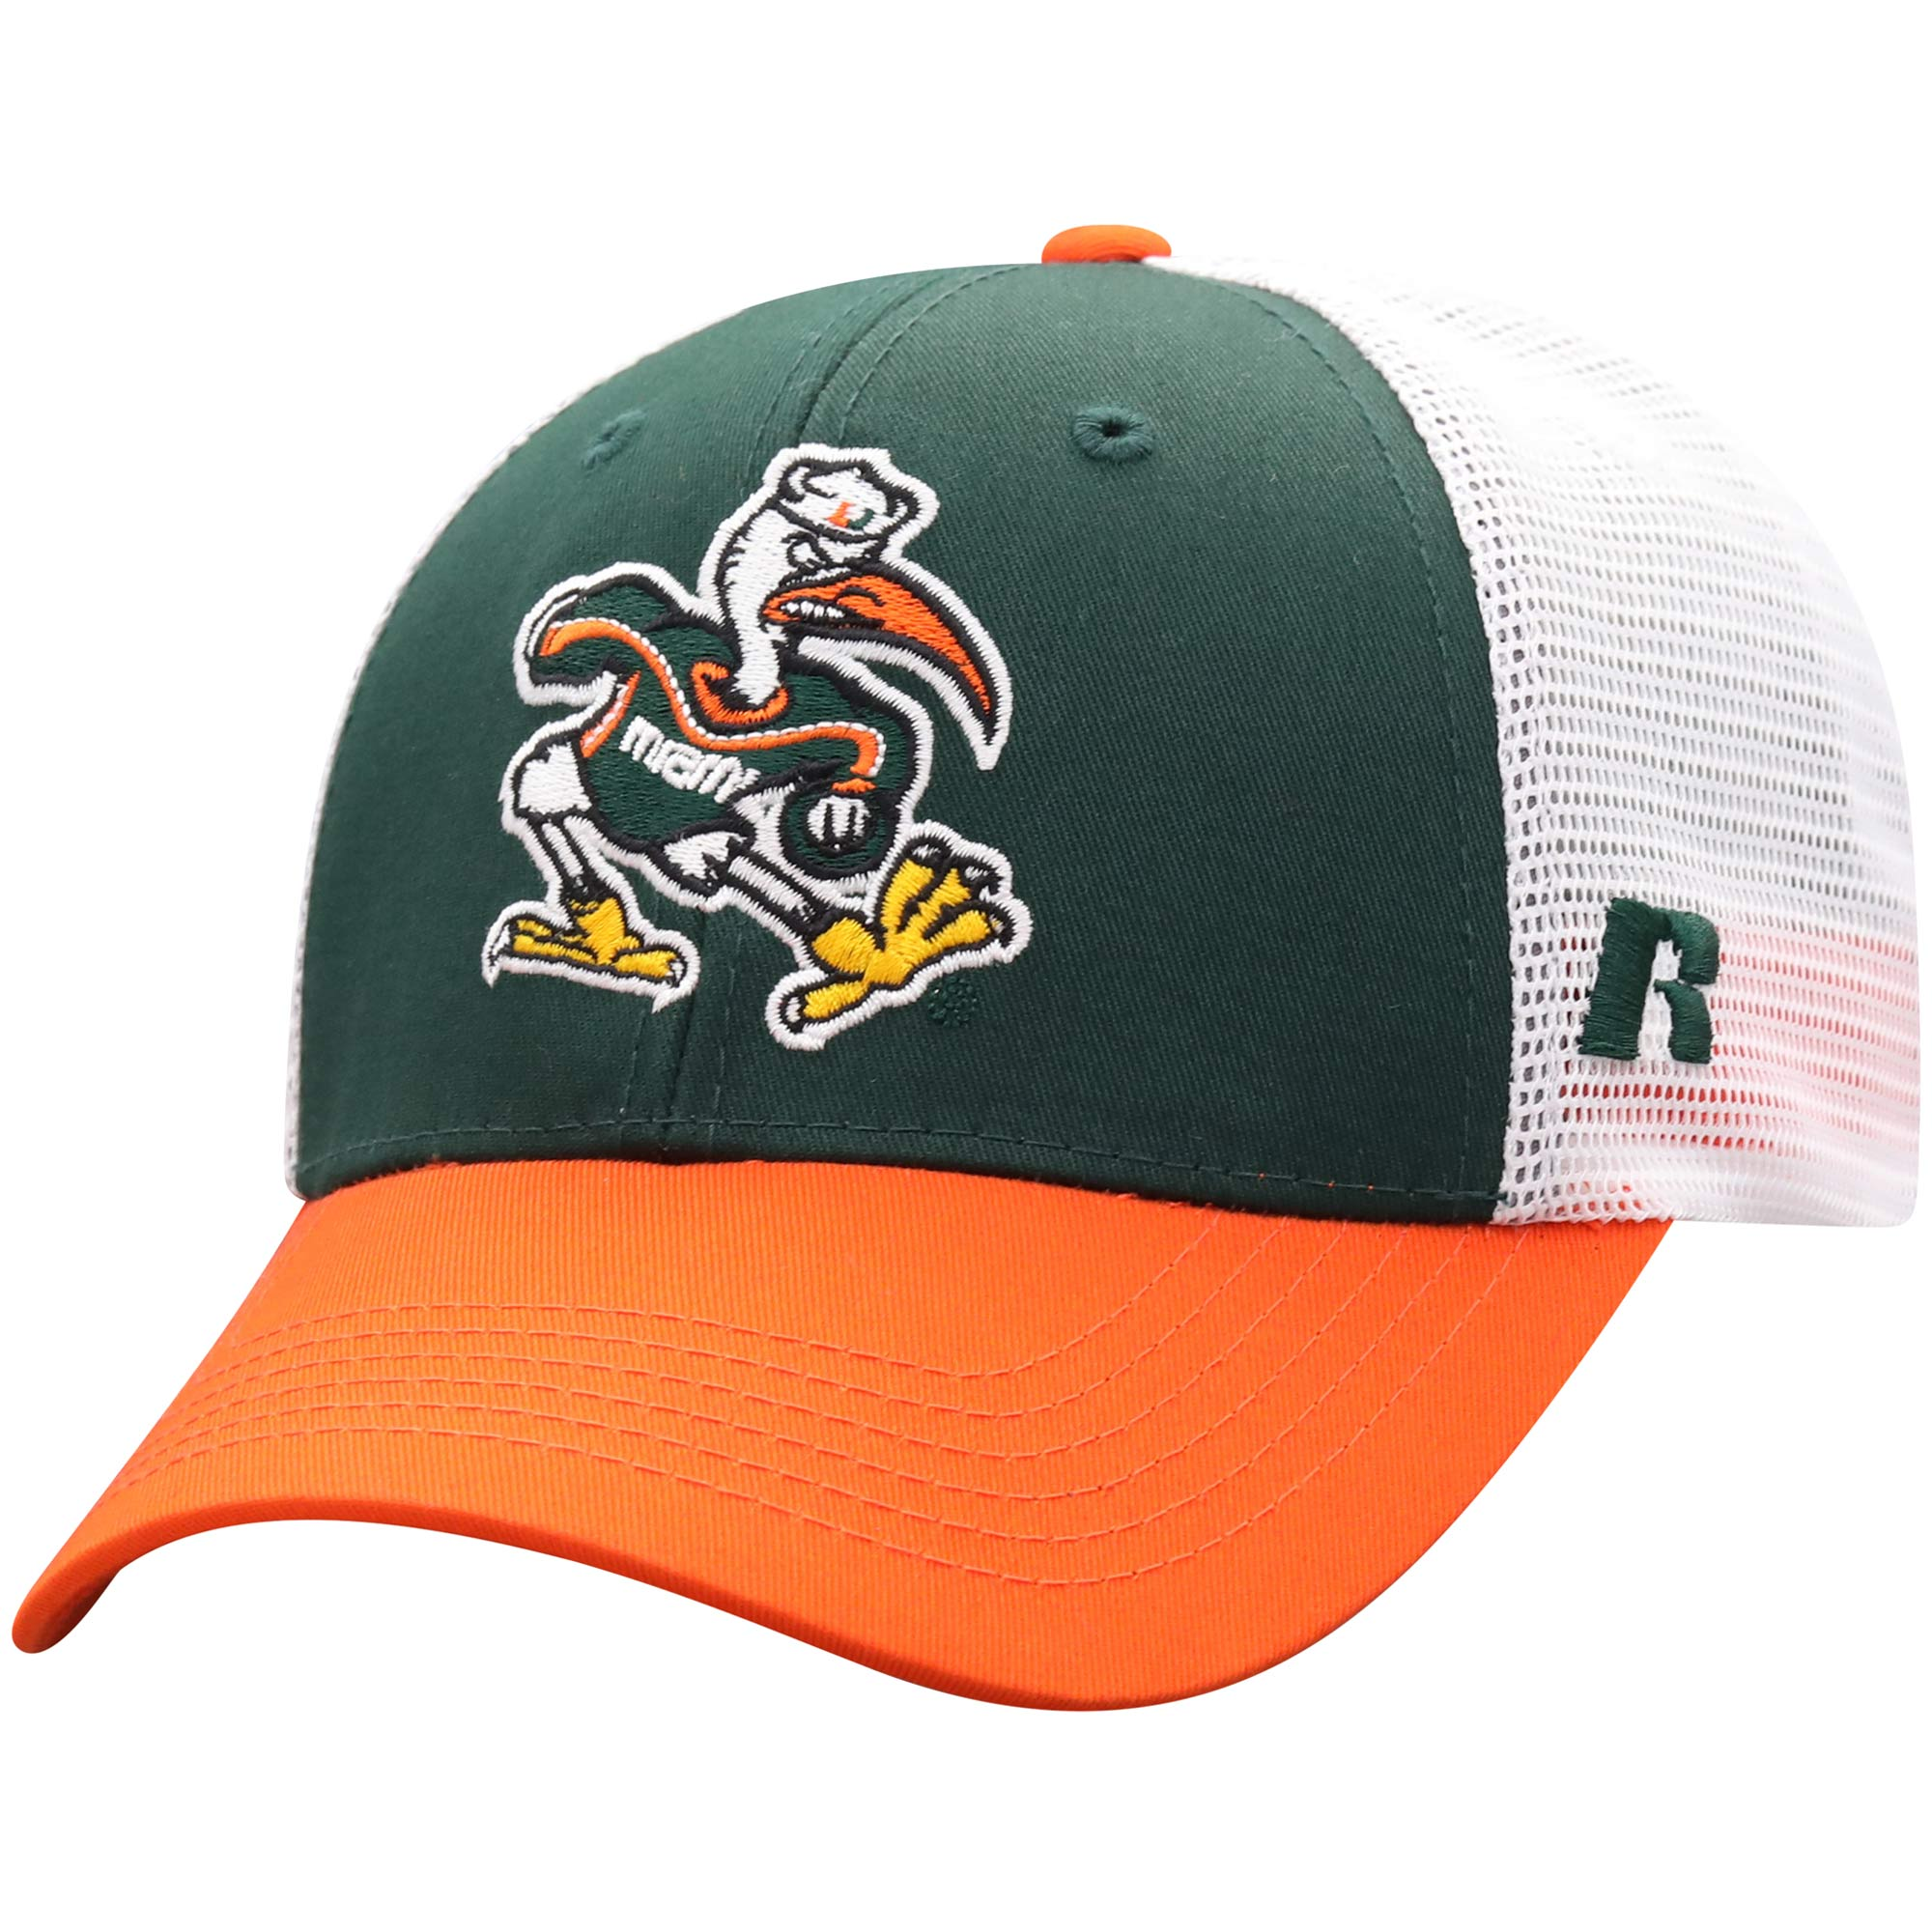 Men's Russell Green/White Miami Hurricanes Steadfast Snapback Adjustable Hat - OSFA